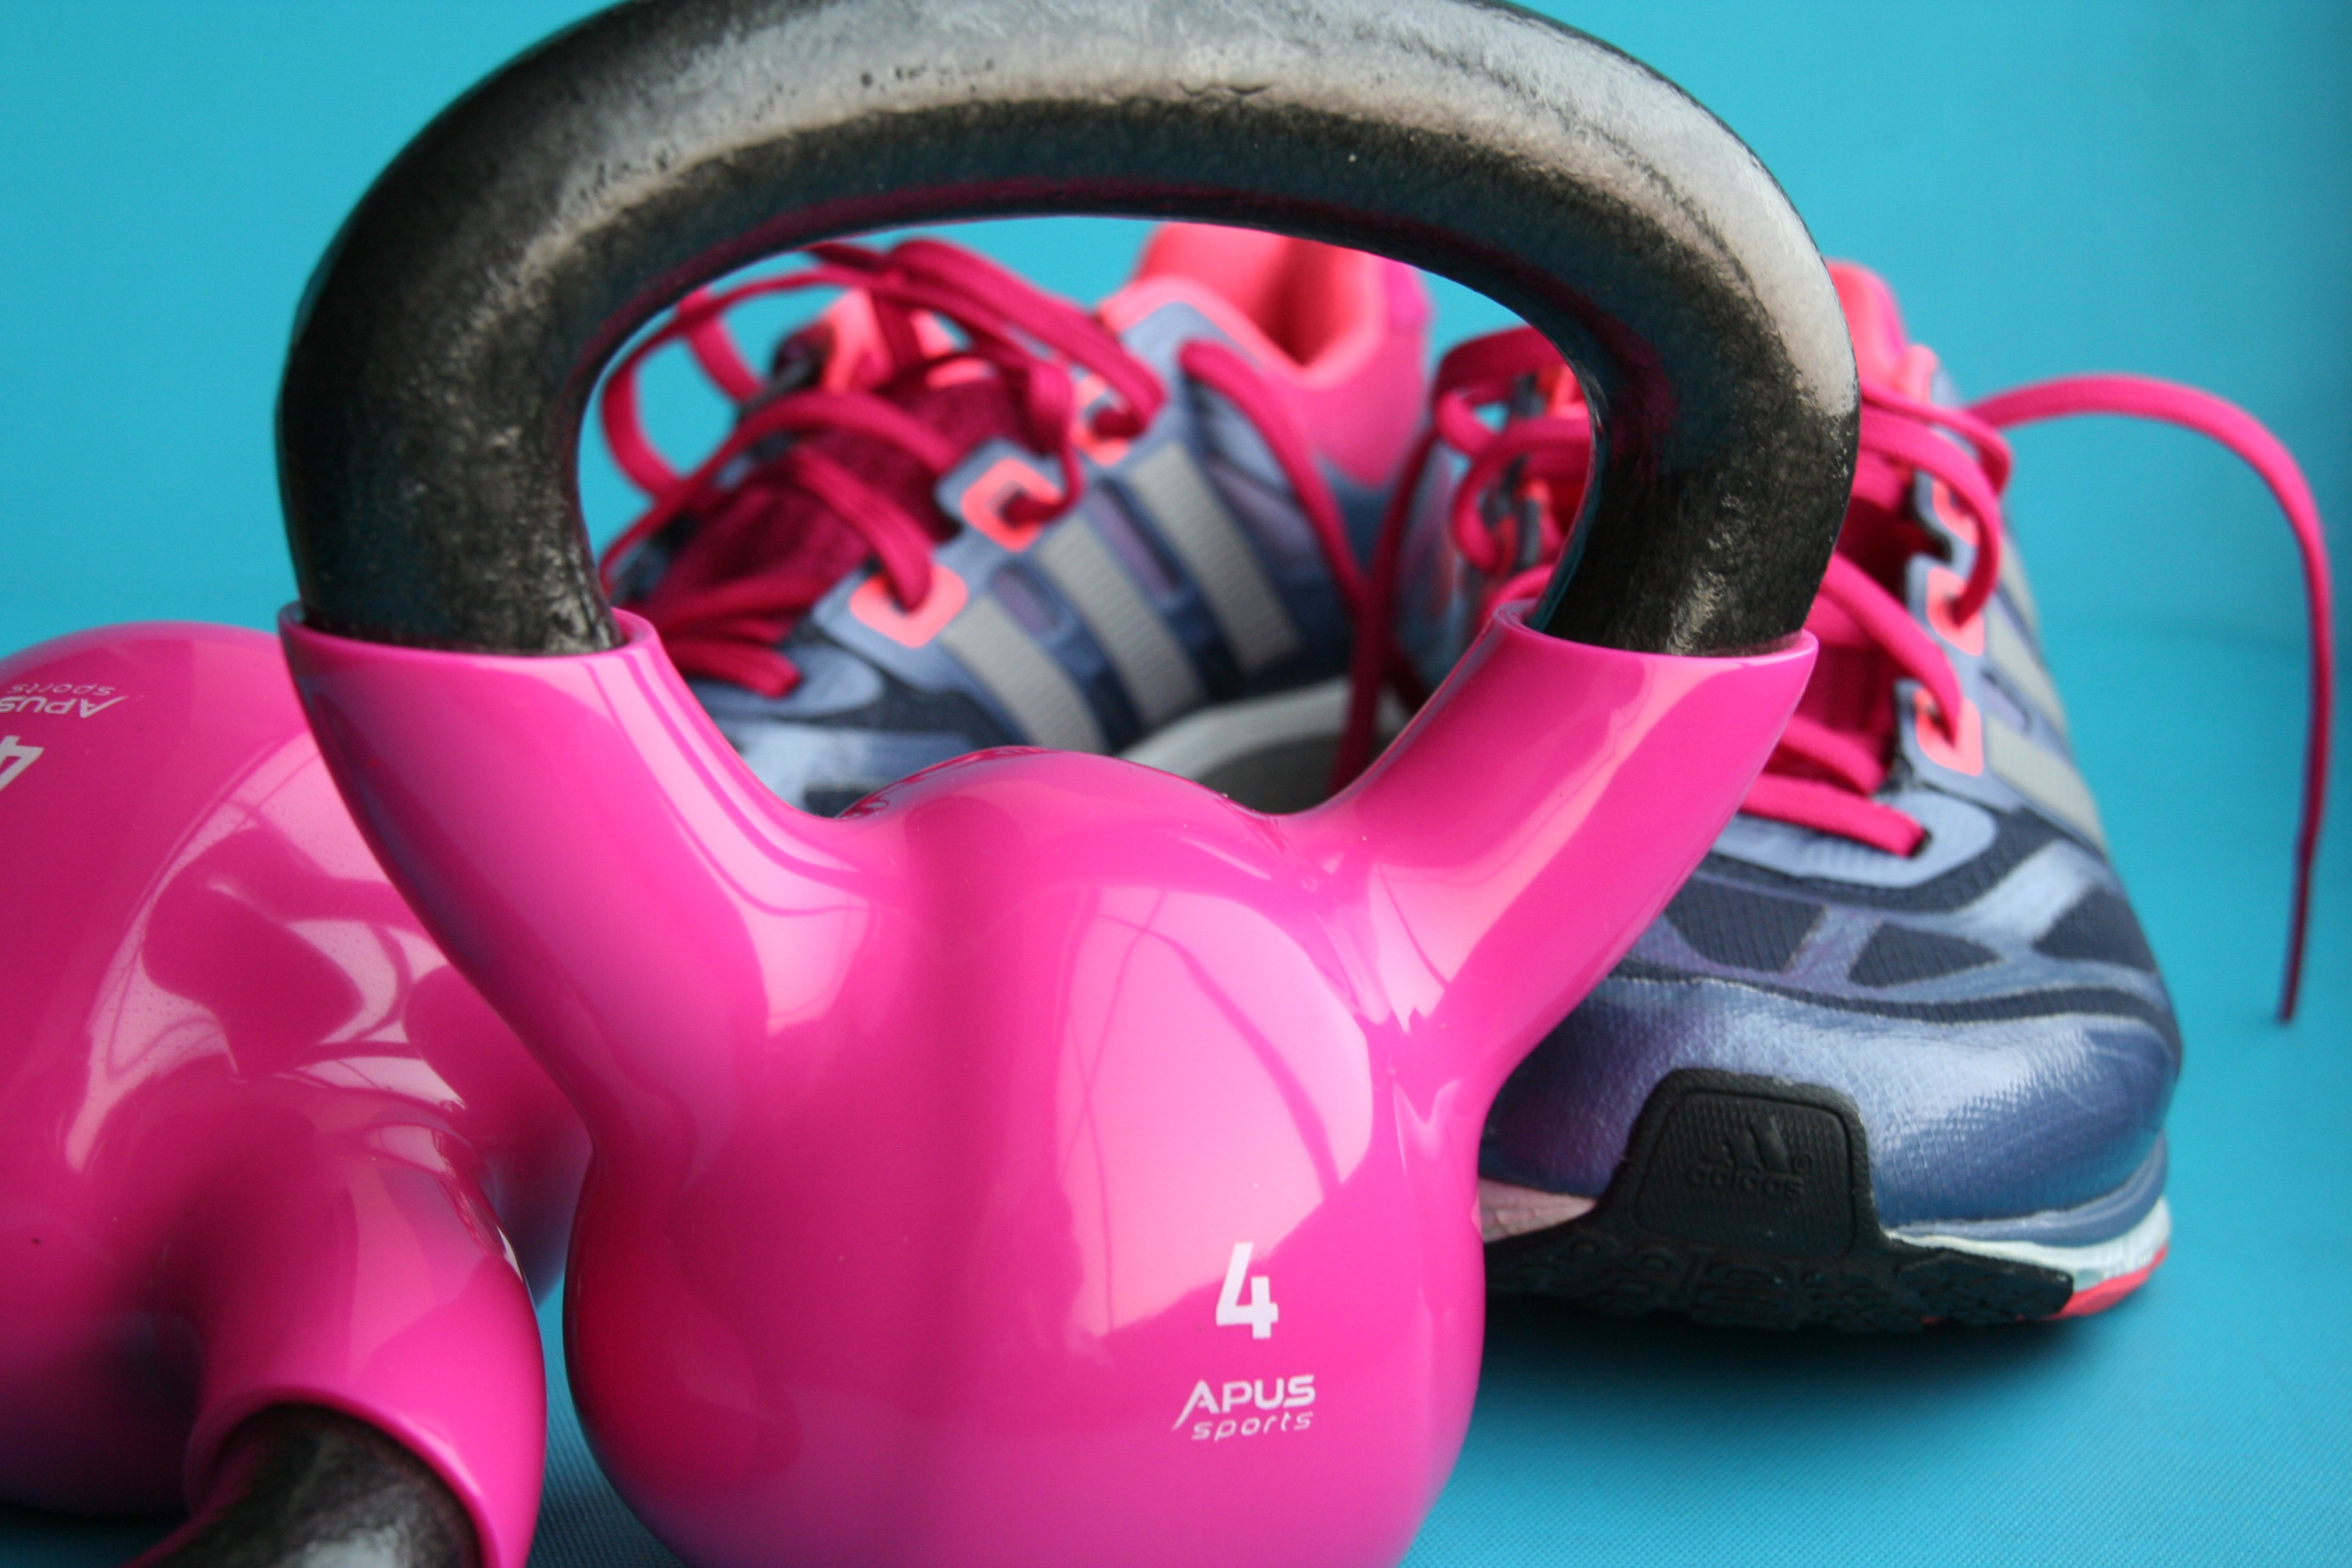 Photo of Kettlebell and Shoes